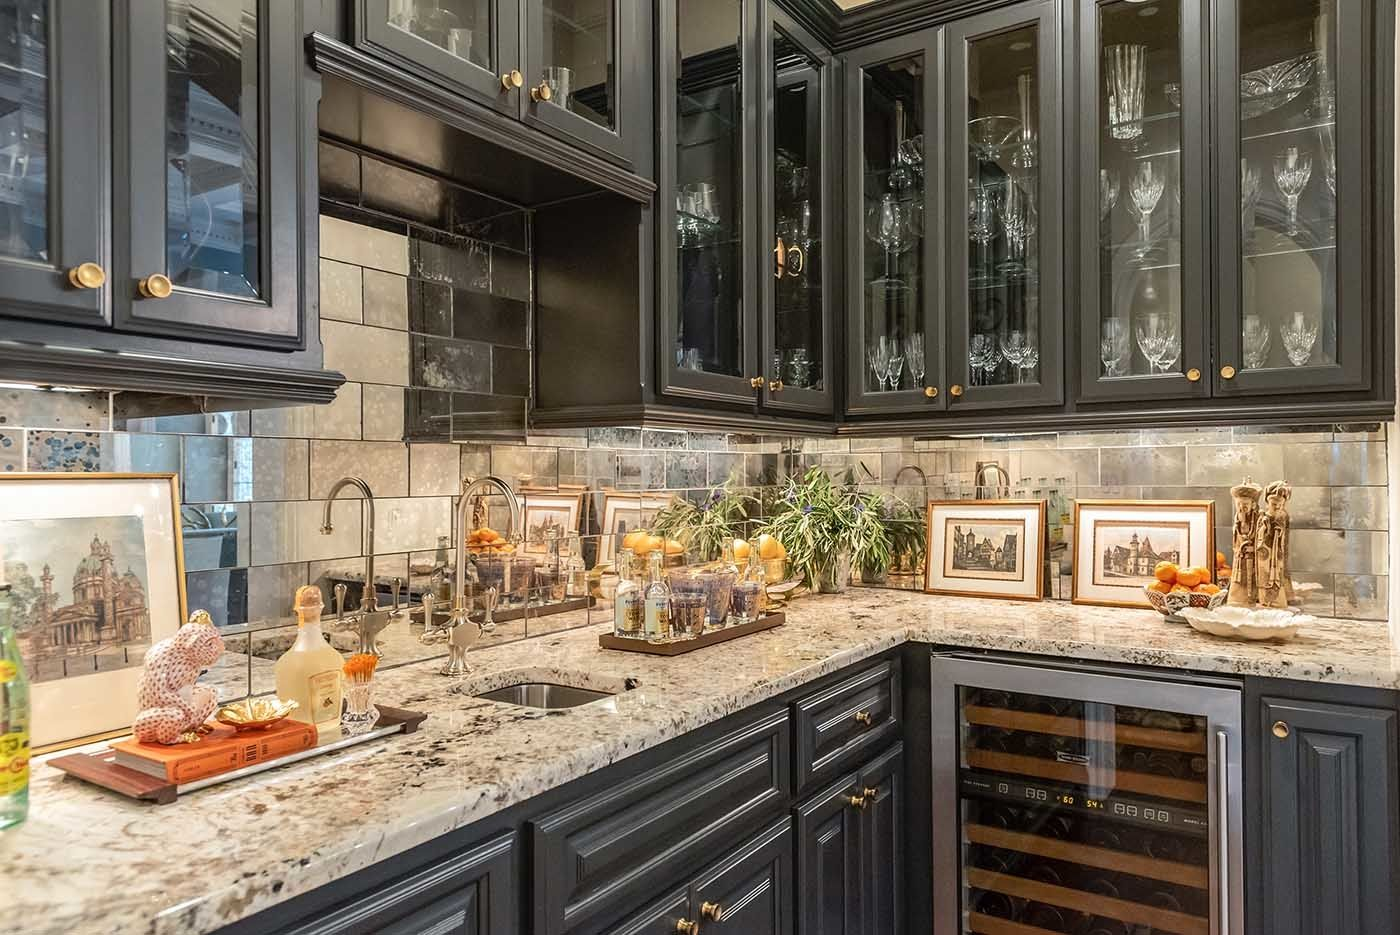 San Antonio Cabinet Painting Project Gallery See Our Work Paper Moon Painting In 2020 Painting Cabinets Kitchen Island Cabinetry Grey Painted Kitchen